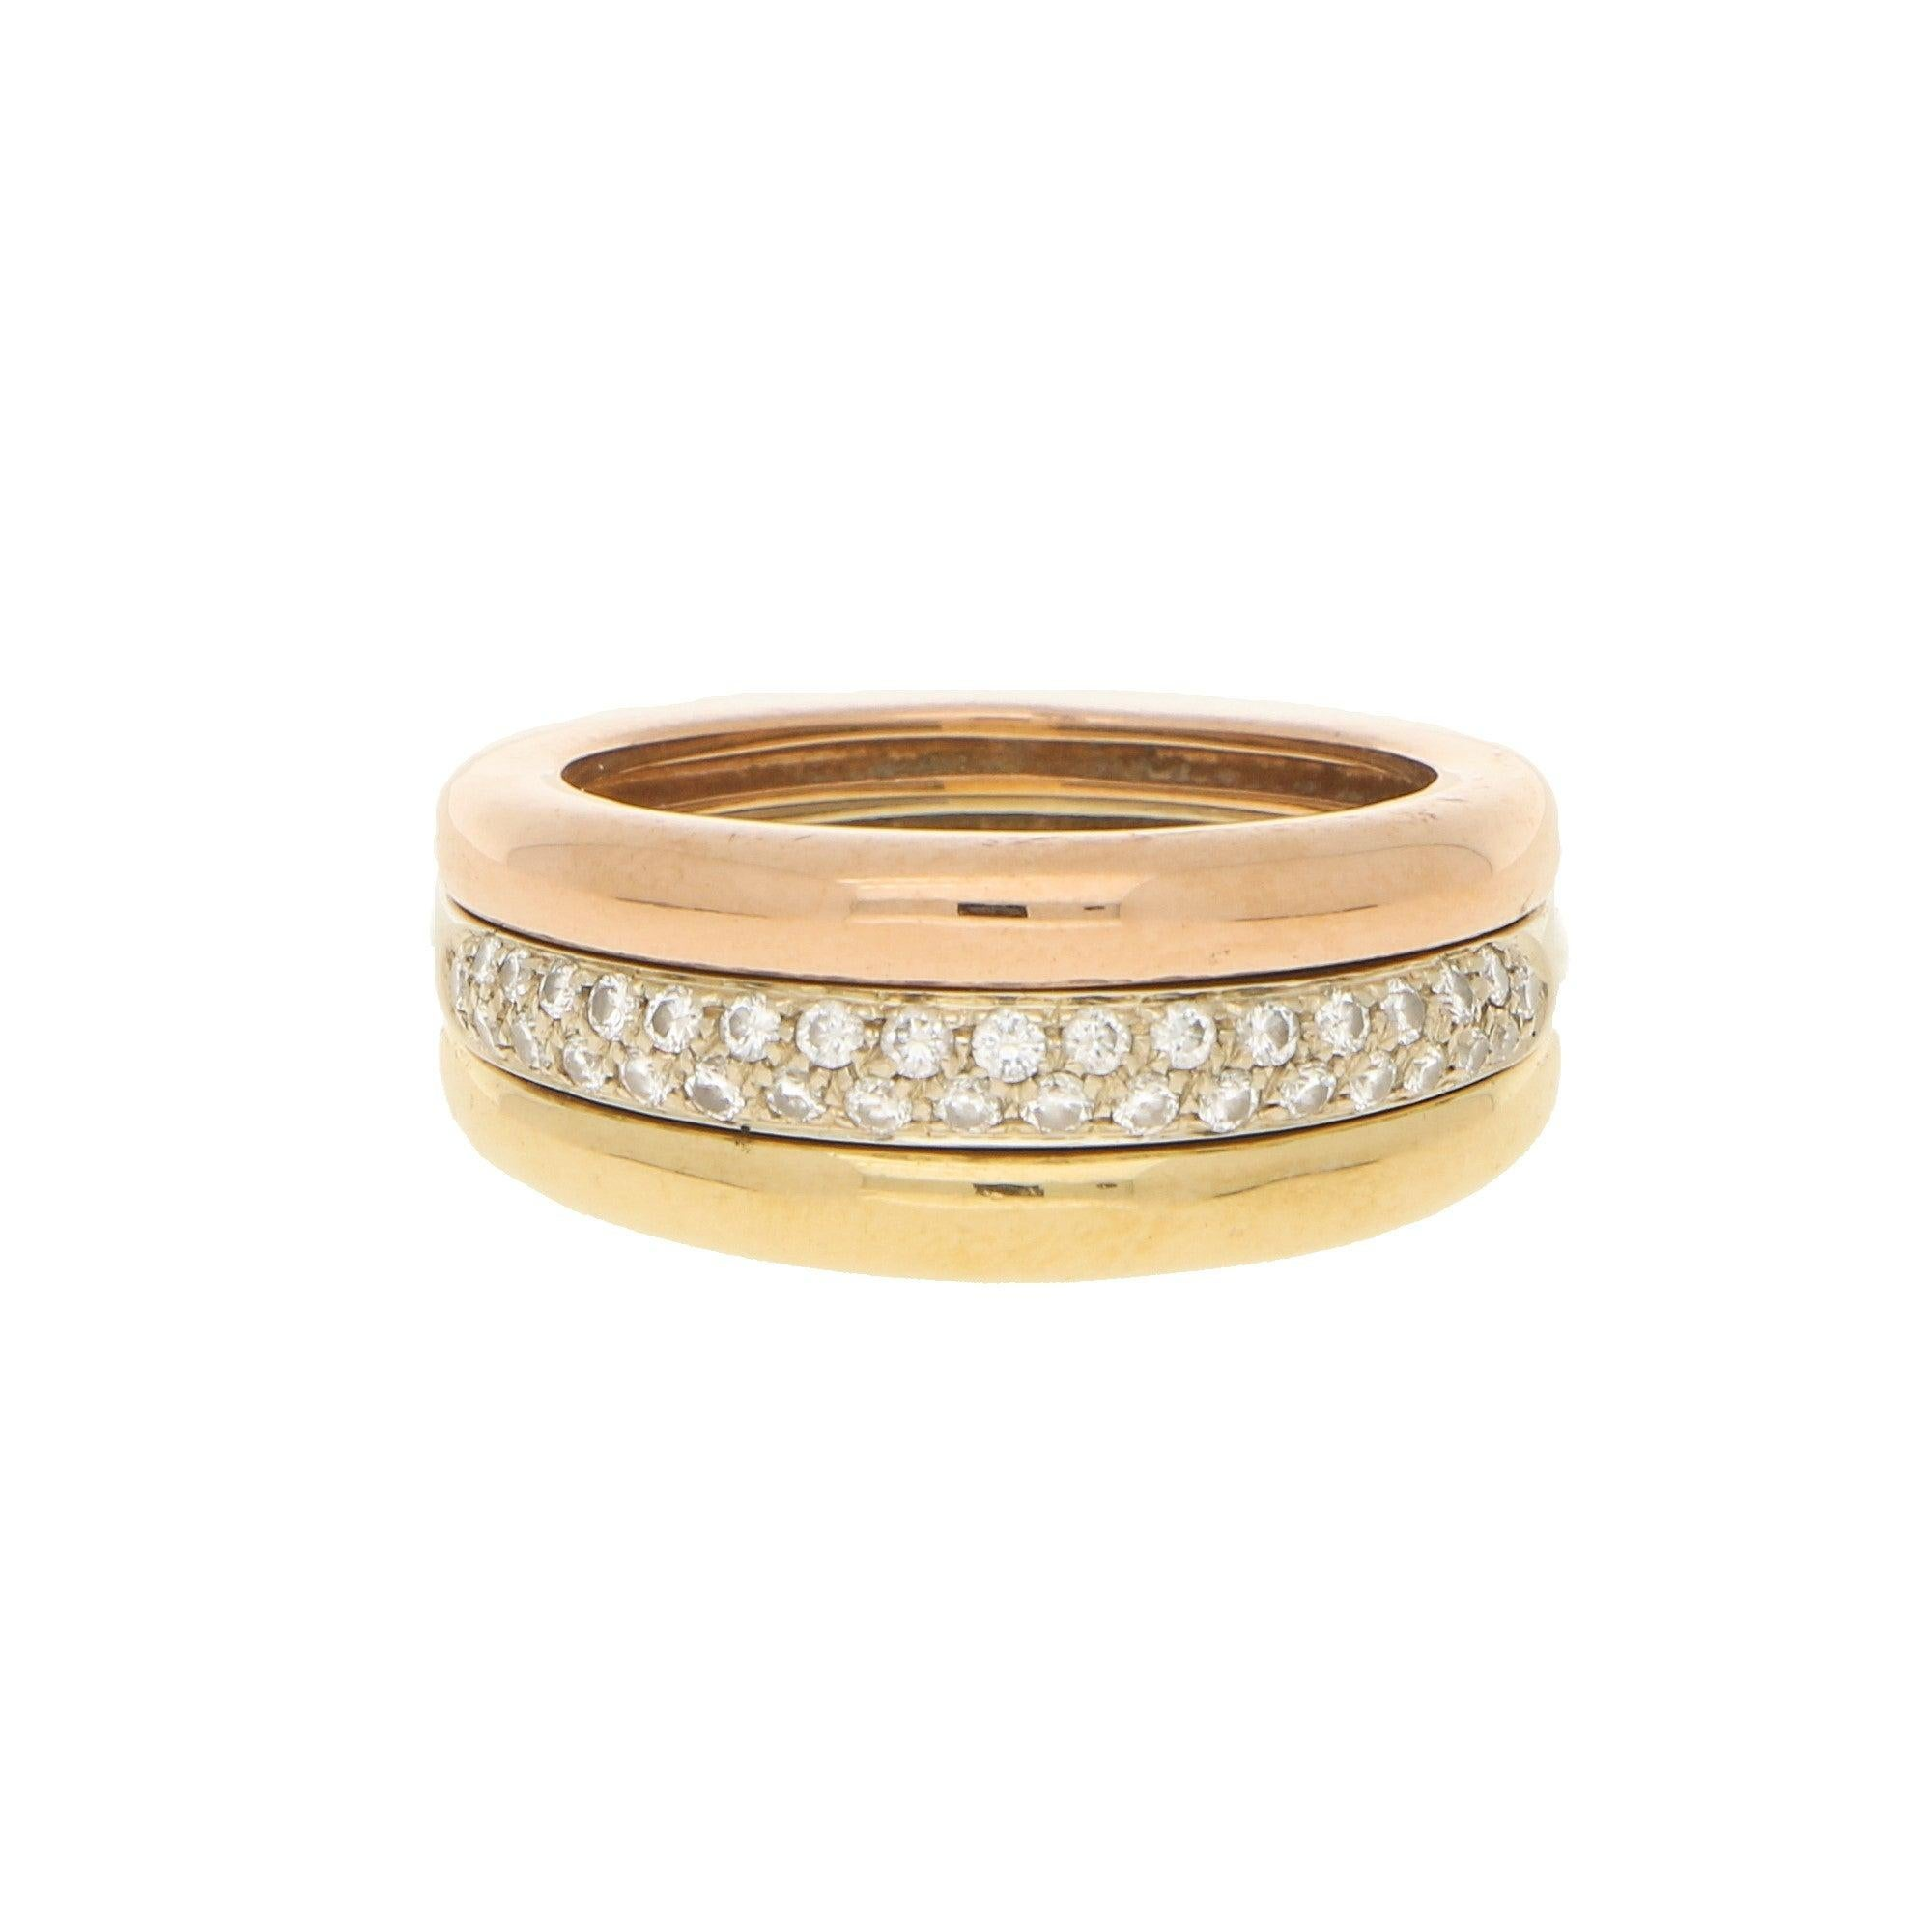 Cartier 18k Tricolor Gold and Diamond Ring circa 1990, Size 54